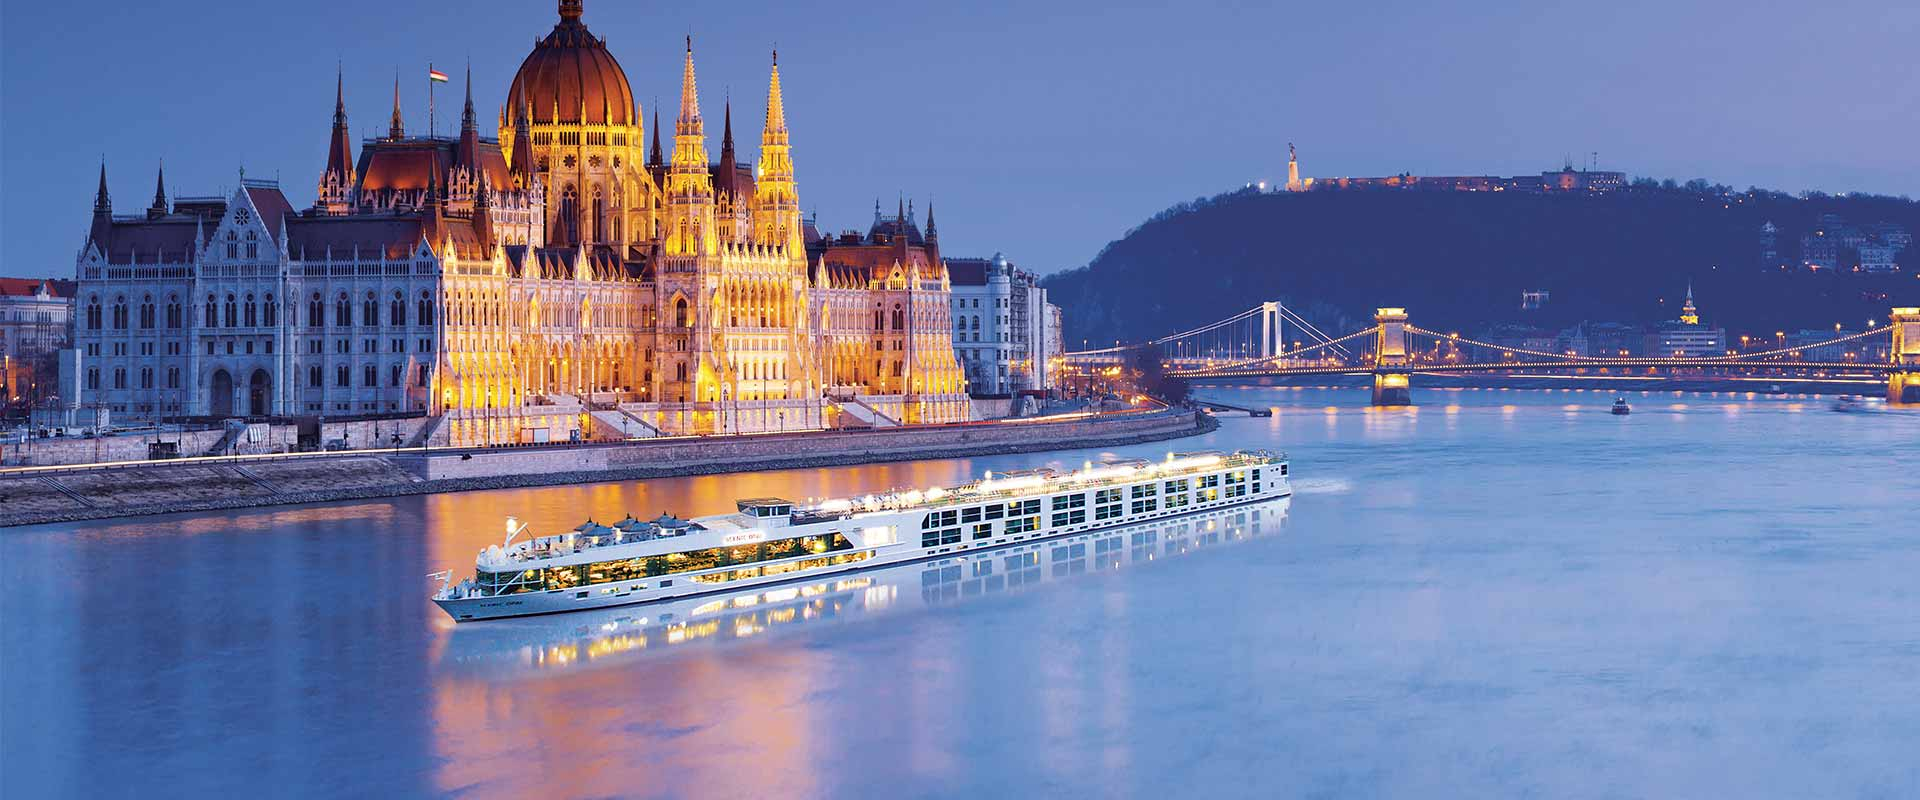 Jewels Of Europe 2019 Start Budapest End Amsterdam By